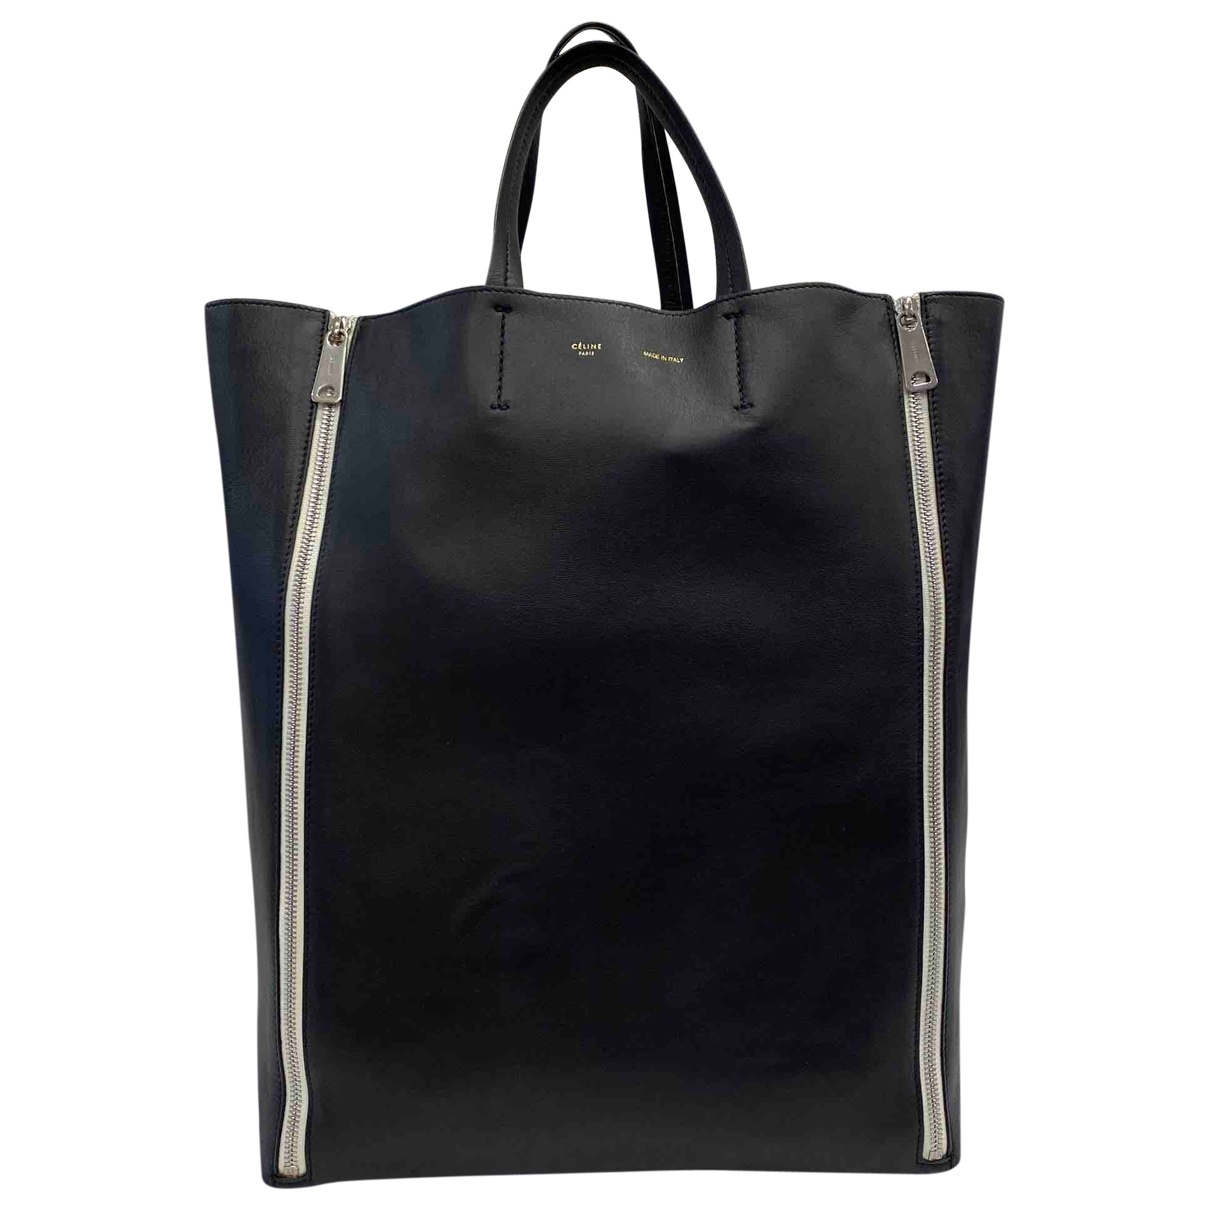 Celine \N Black Leather handbag for Women \N